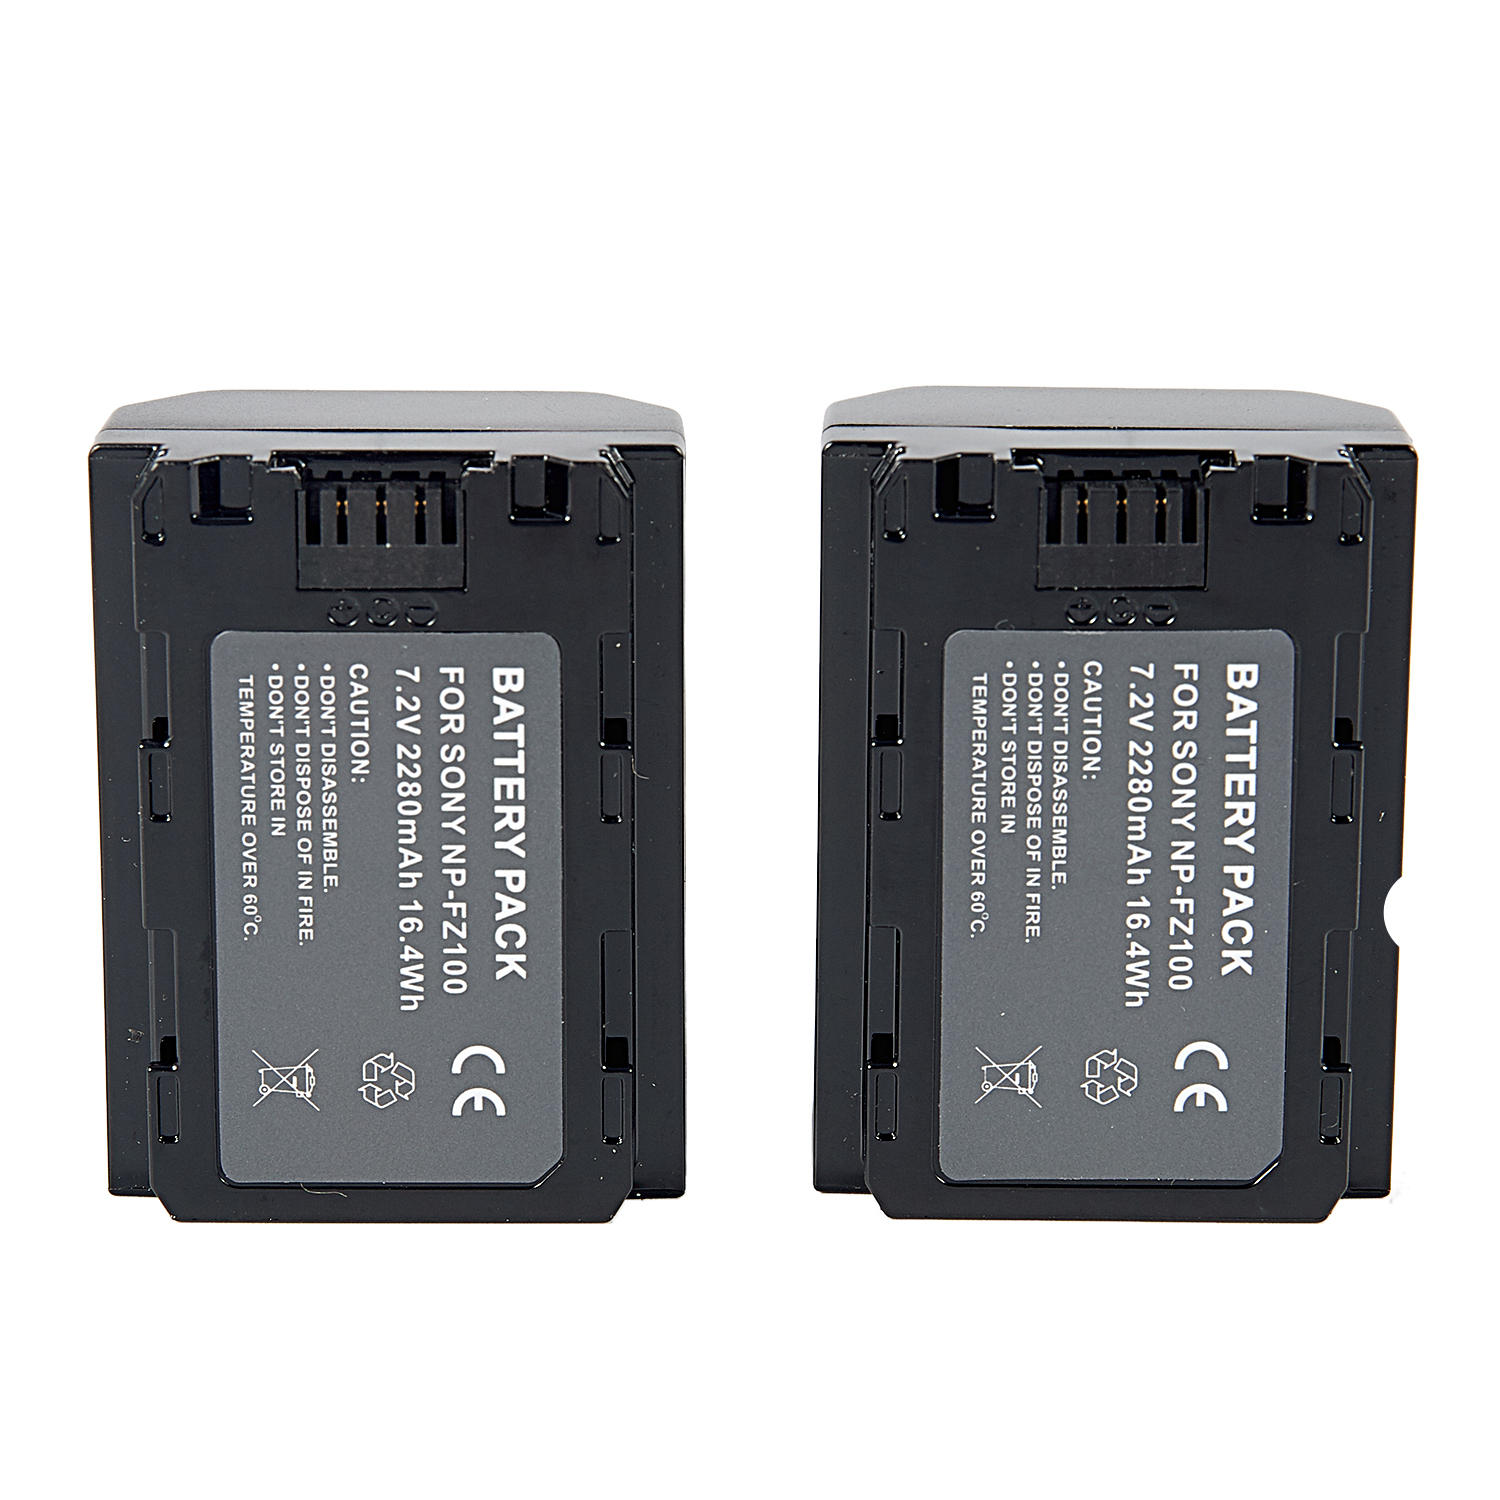 2pcs Battery , AC Charger,Car charging line and us power cord for Sony NP-FZ100,Sony Alpha 9, Alpha A9, Alpha 9R, Alpha A9 Cam2pcs Battery , AC Charger,Car charging line and us power cord for Sony NP-FZ100,Sony Alpha 9, Alpha A9, Alpha 9R, Alpha A9 Cam